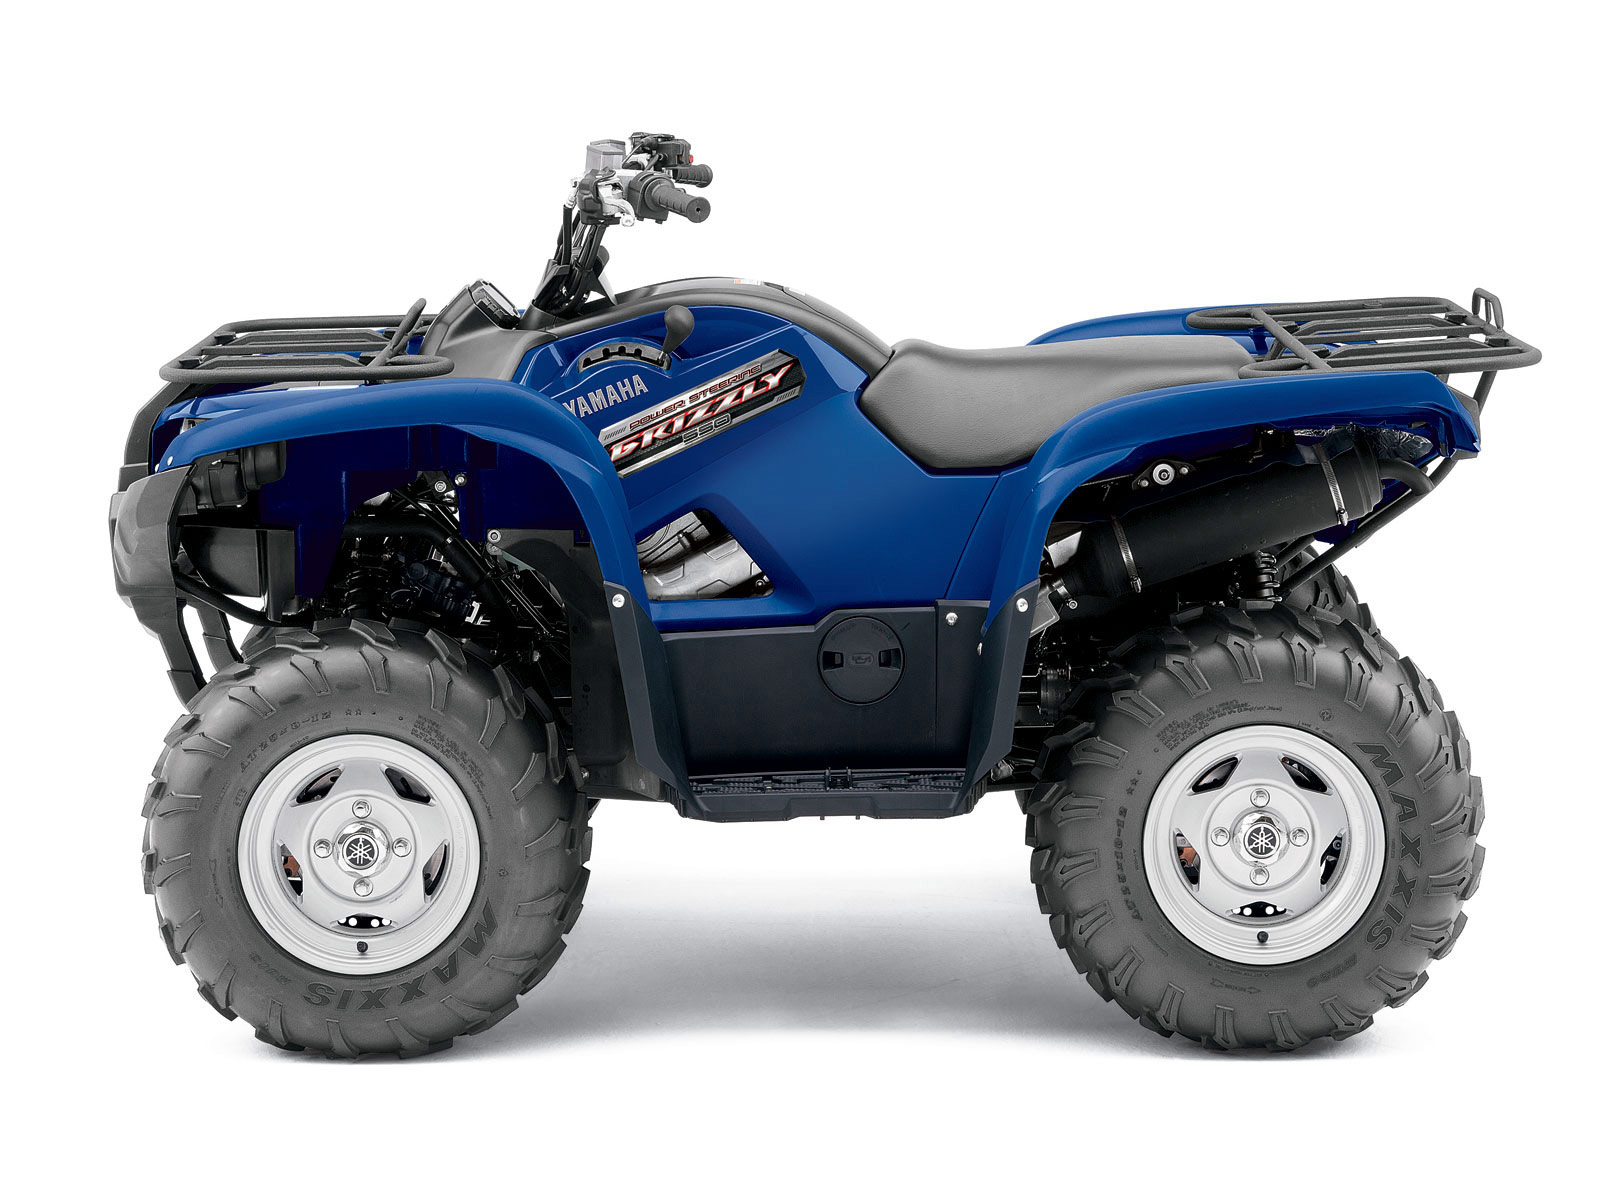 2012 yamaha grizzly 550 fi auto 4x4 eps atv pictures. Black Bedroom Furniture Sets. Home Design Ideas